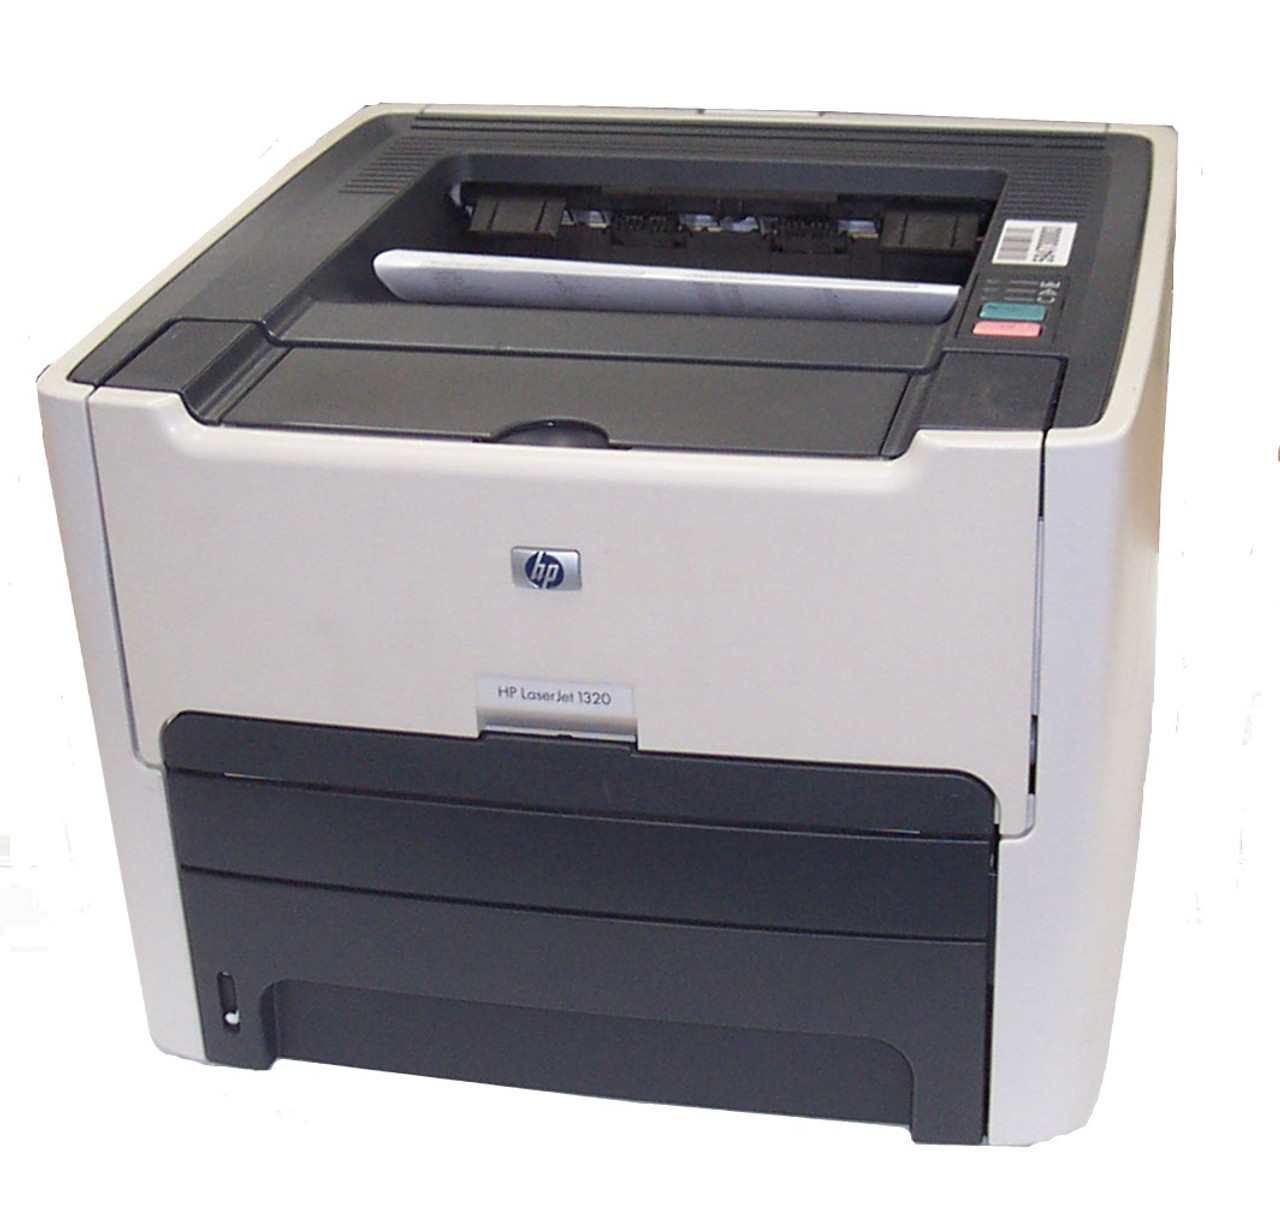 HP LaserJet 1320 - Q5927A - HP Laser Printer for sale